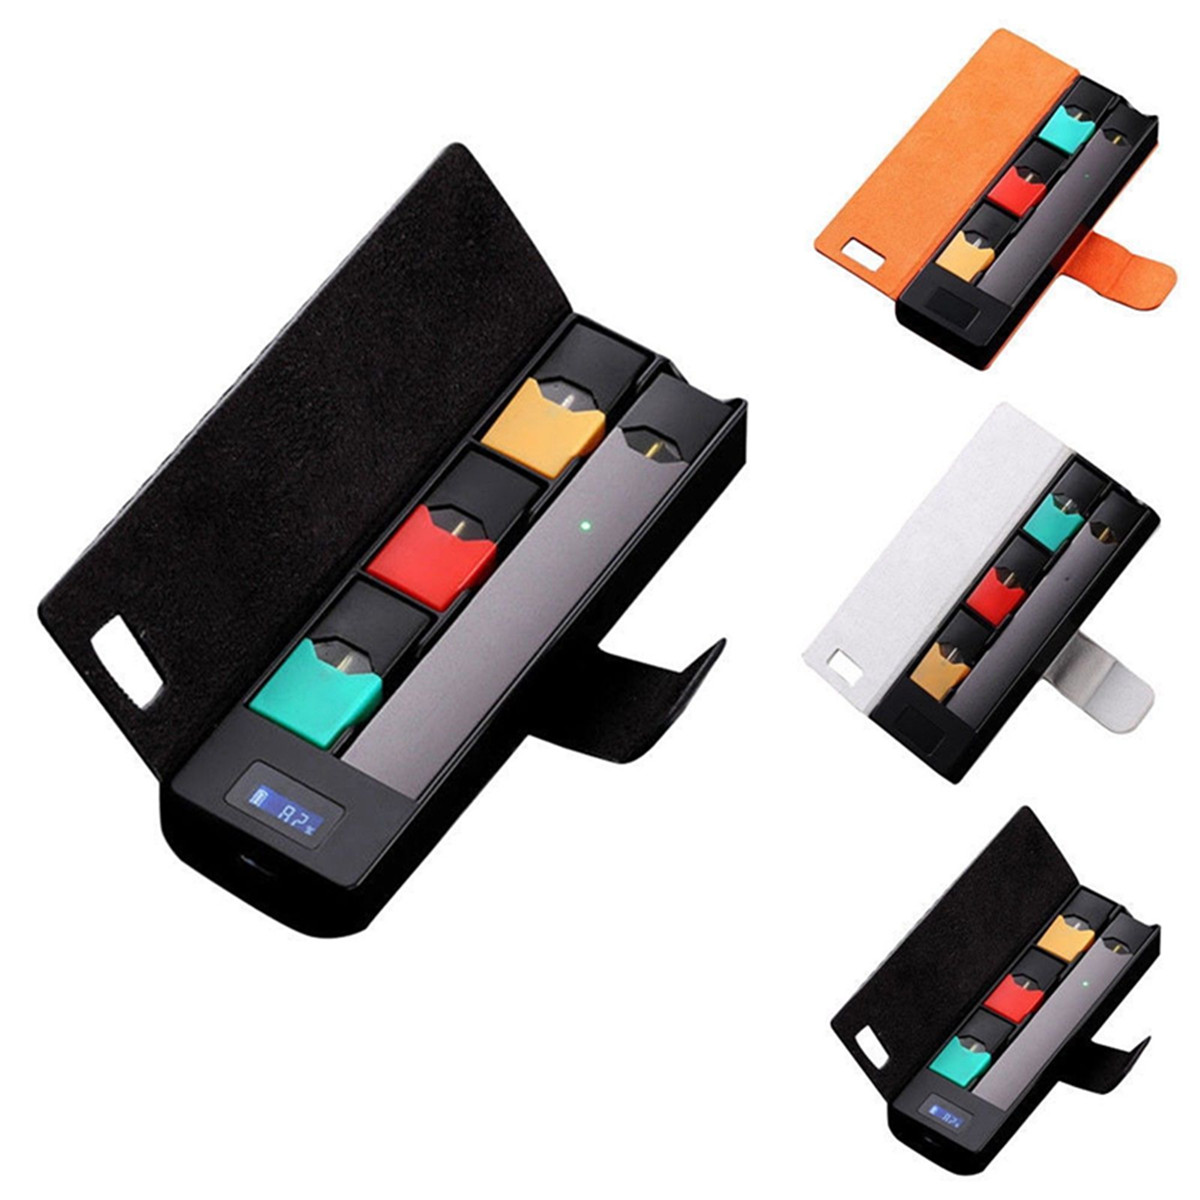 JUUL Travel Pill Case Portable Power Charger Traveling